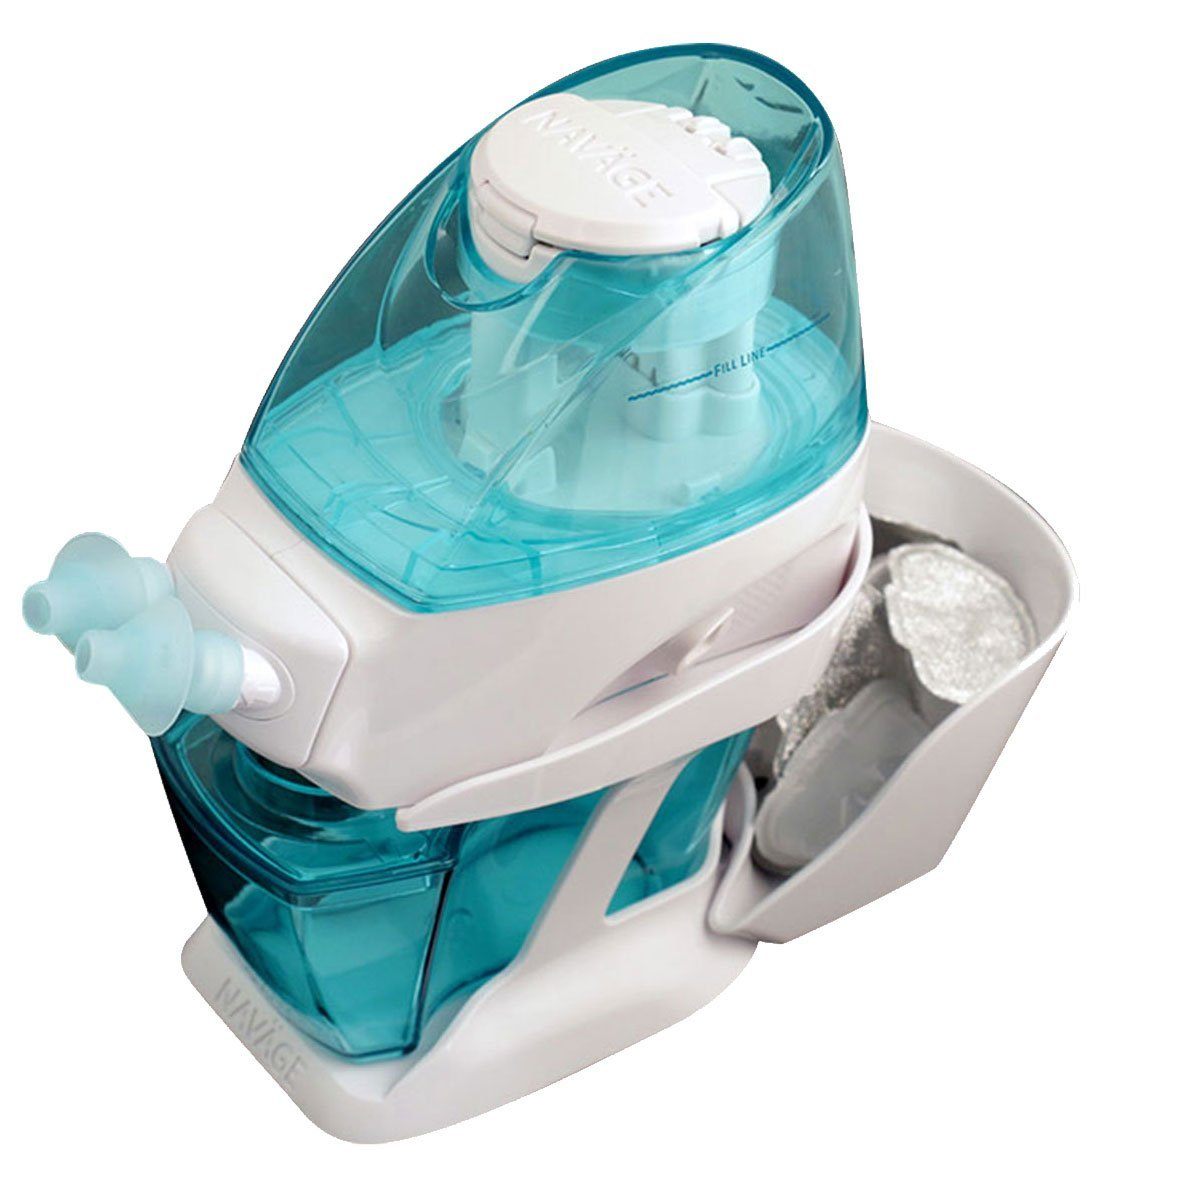 Navage Nasal Irrigation Deluxe Bundle: Naväge Nose Cleaner, 60 SaltPod Capsules, Countertop Caddy, and Travel Case. $160.75 if purchased separately. You save $40.80 (25%) by Navage (Image #6)